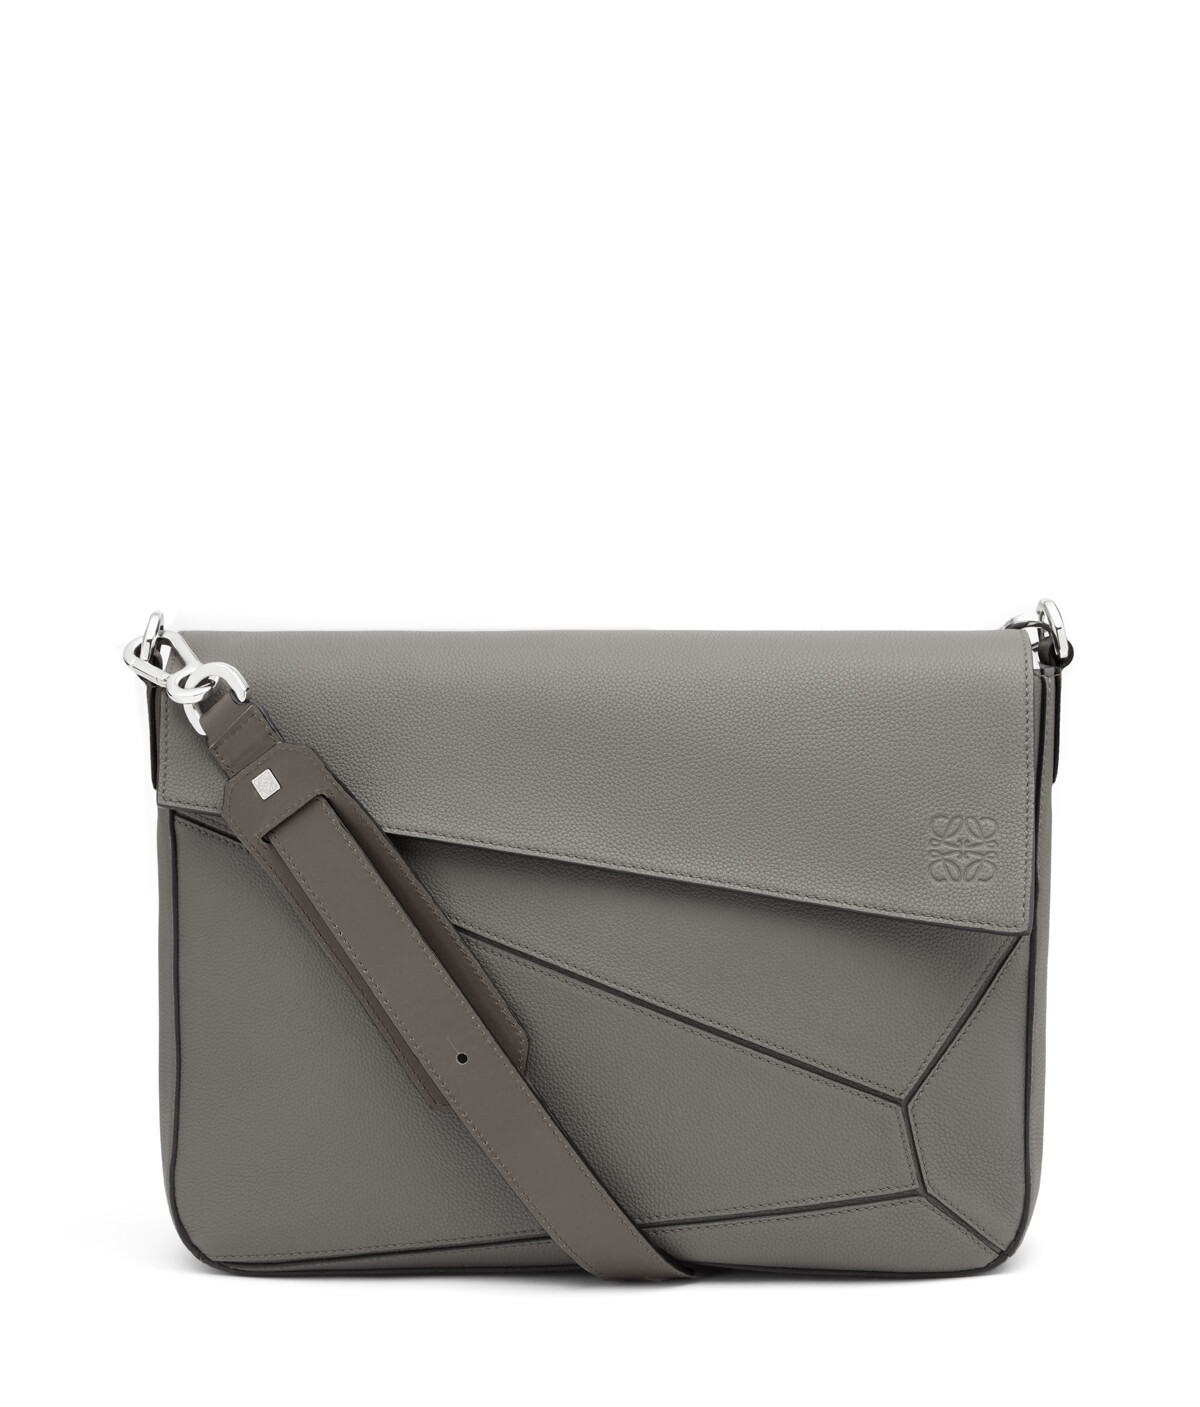 LOEWE Bolso Puzzle Messenger Gris Metalico front